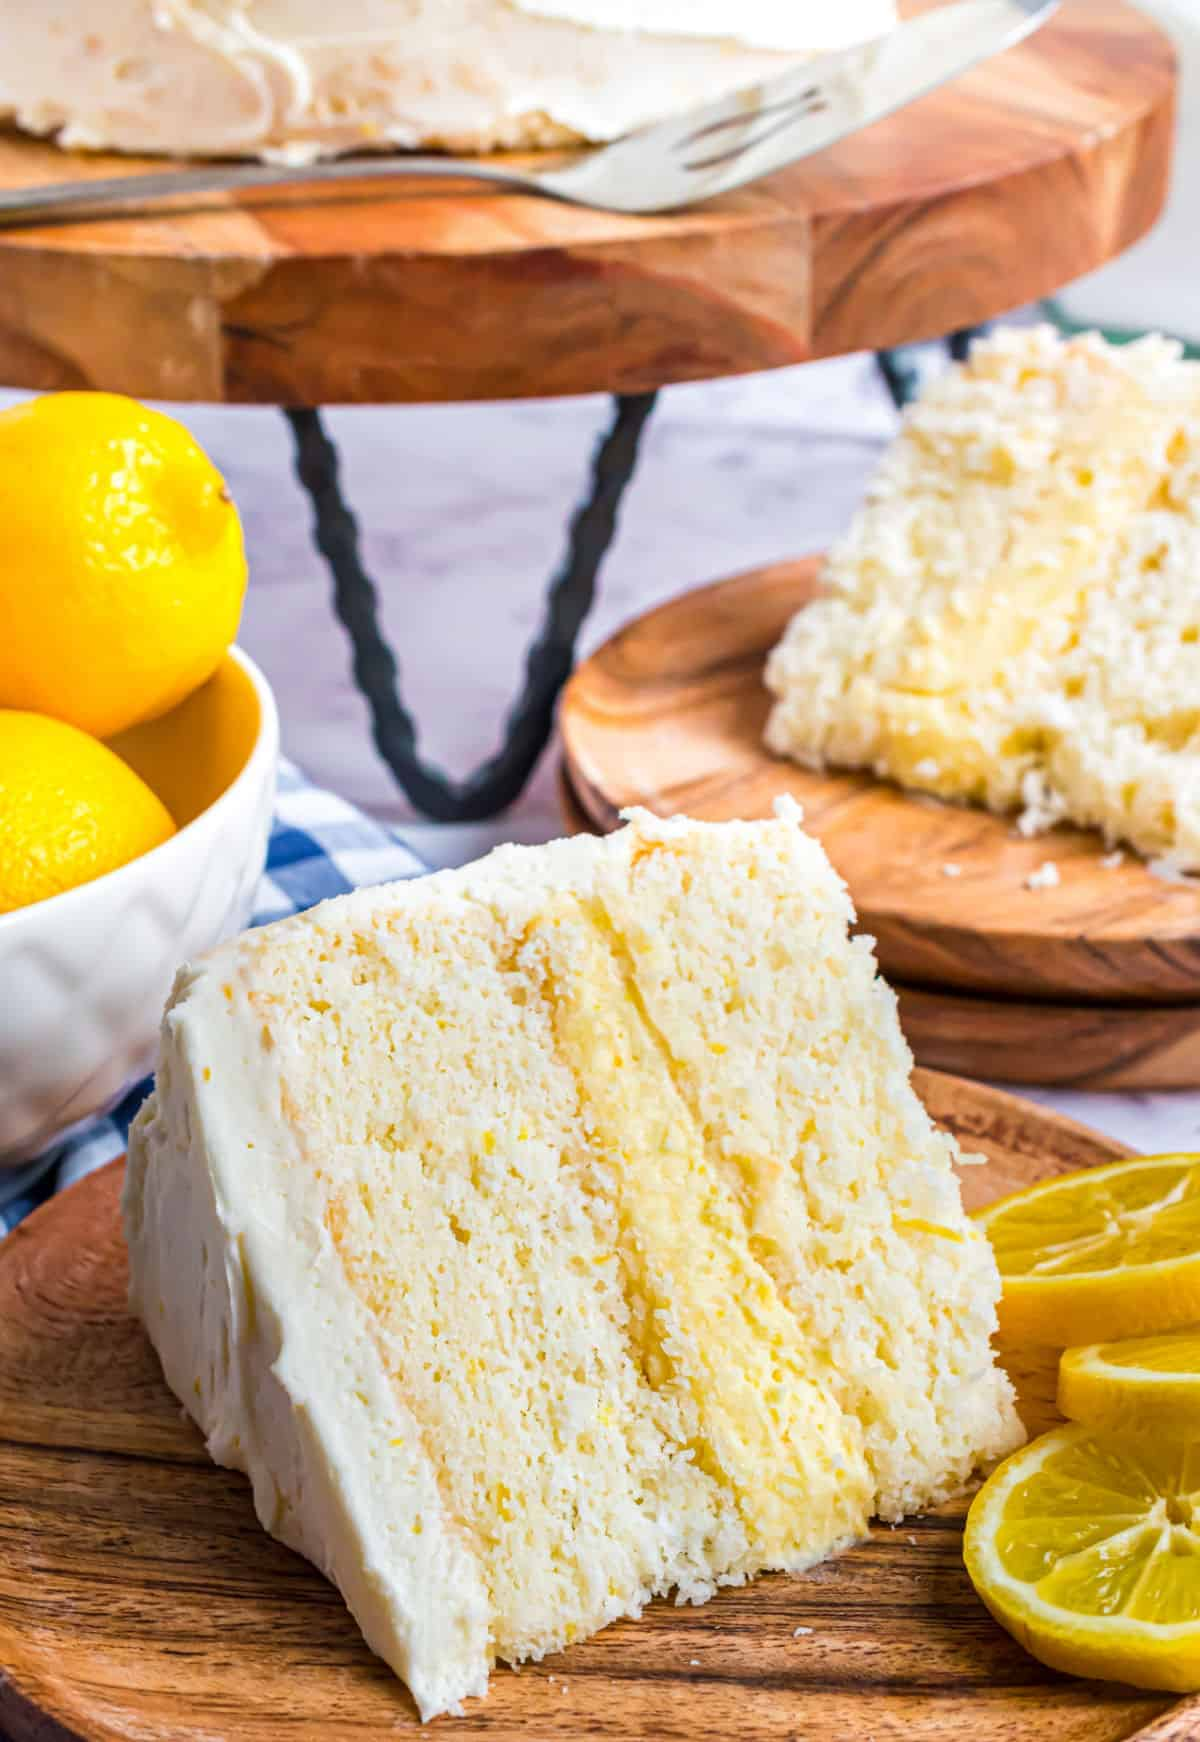 Slice of lemon layer cake with lemon curd filling on a wooden plate.